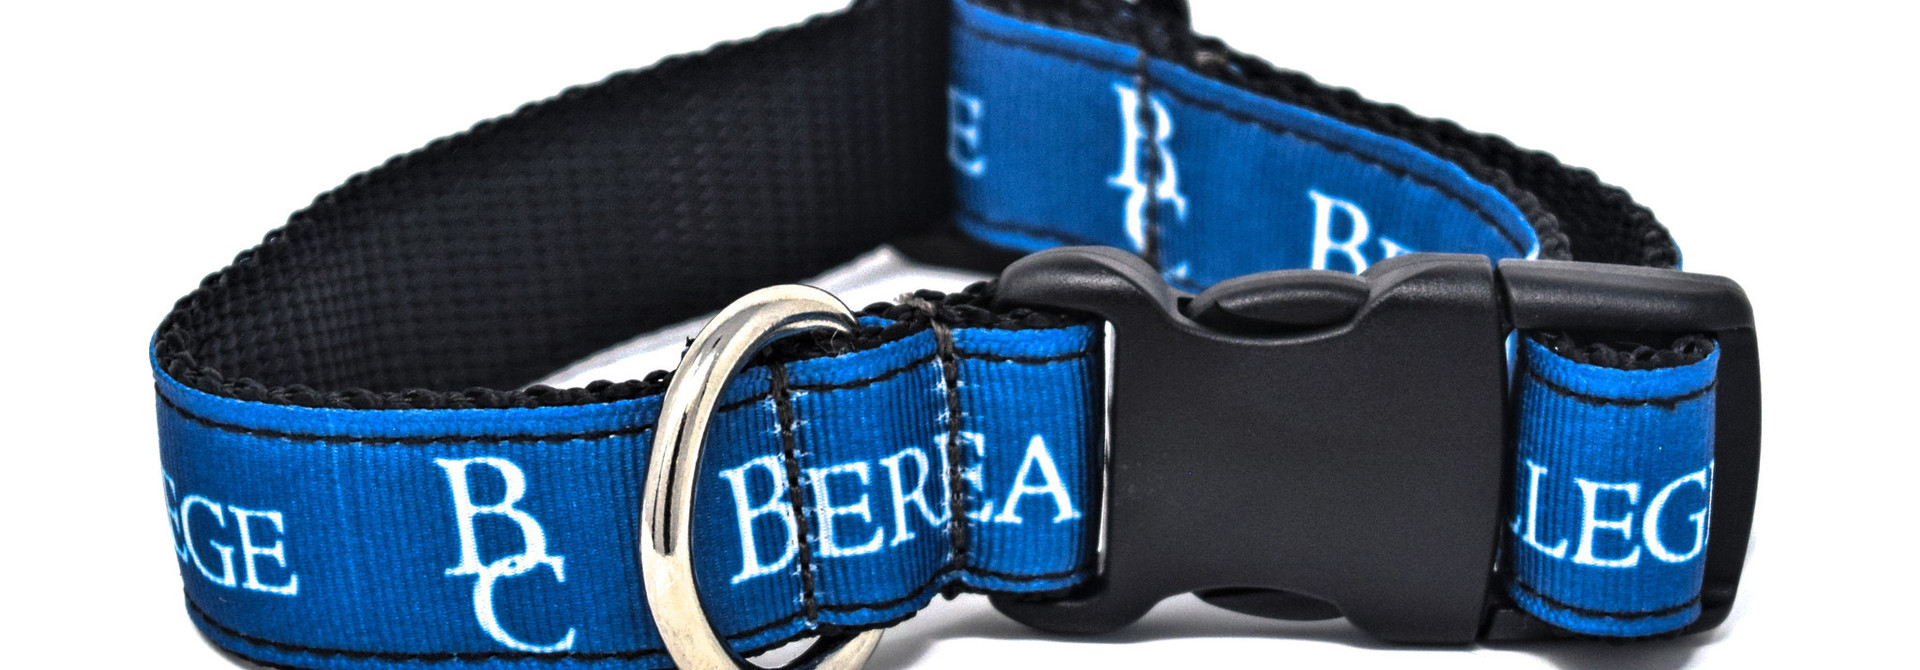 Berea Dog Collar